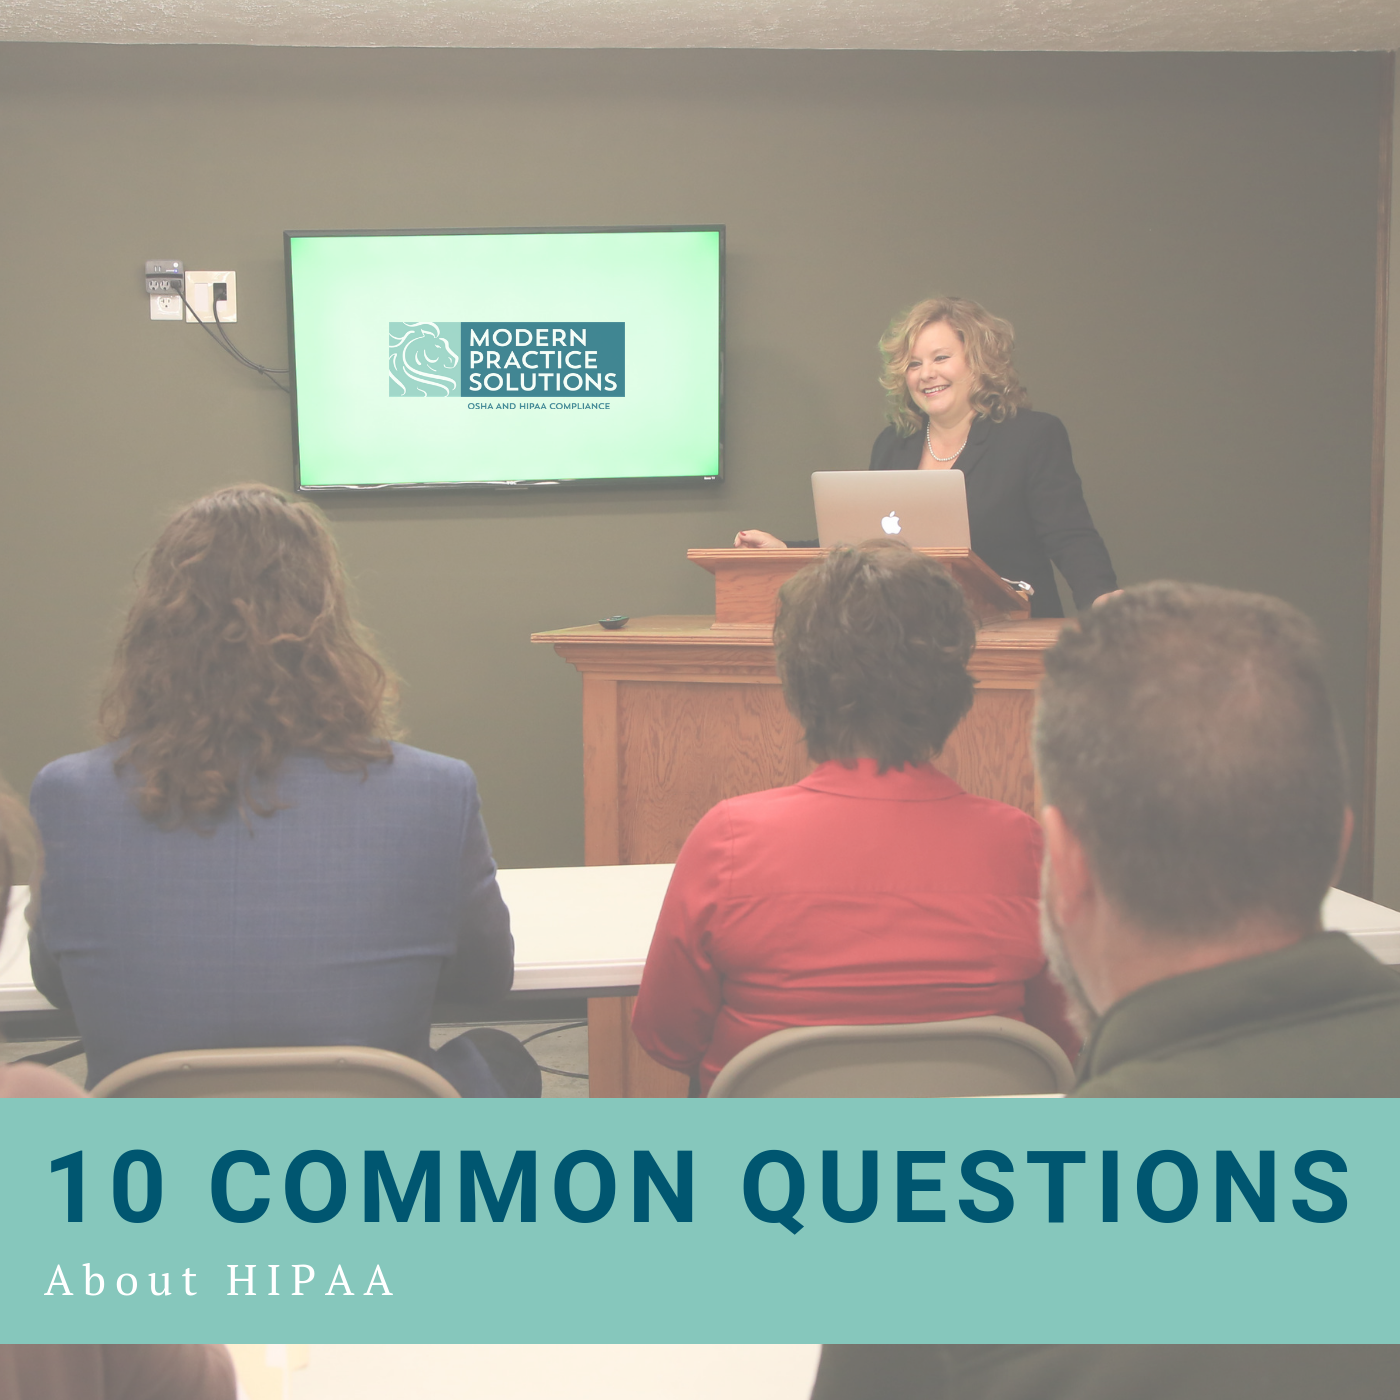 10 Common Questions about HIPAA, Answered